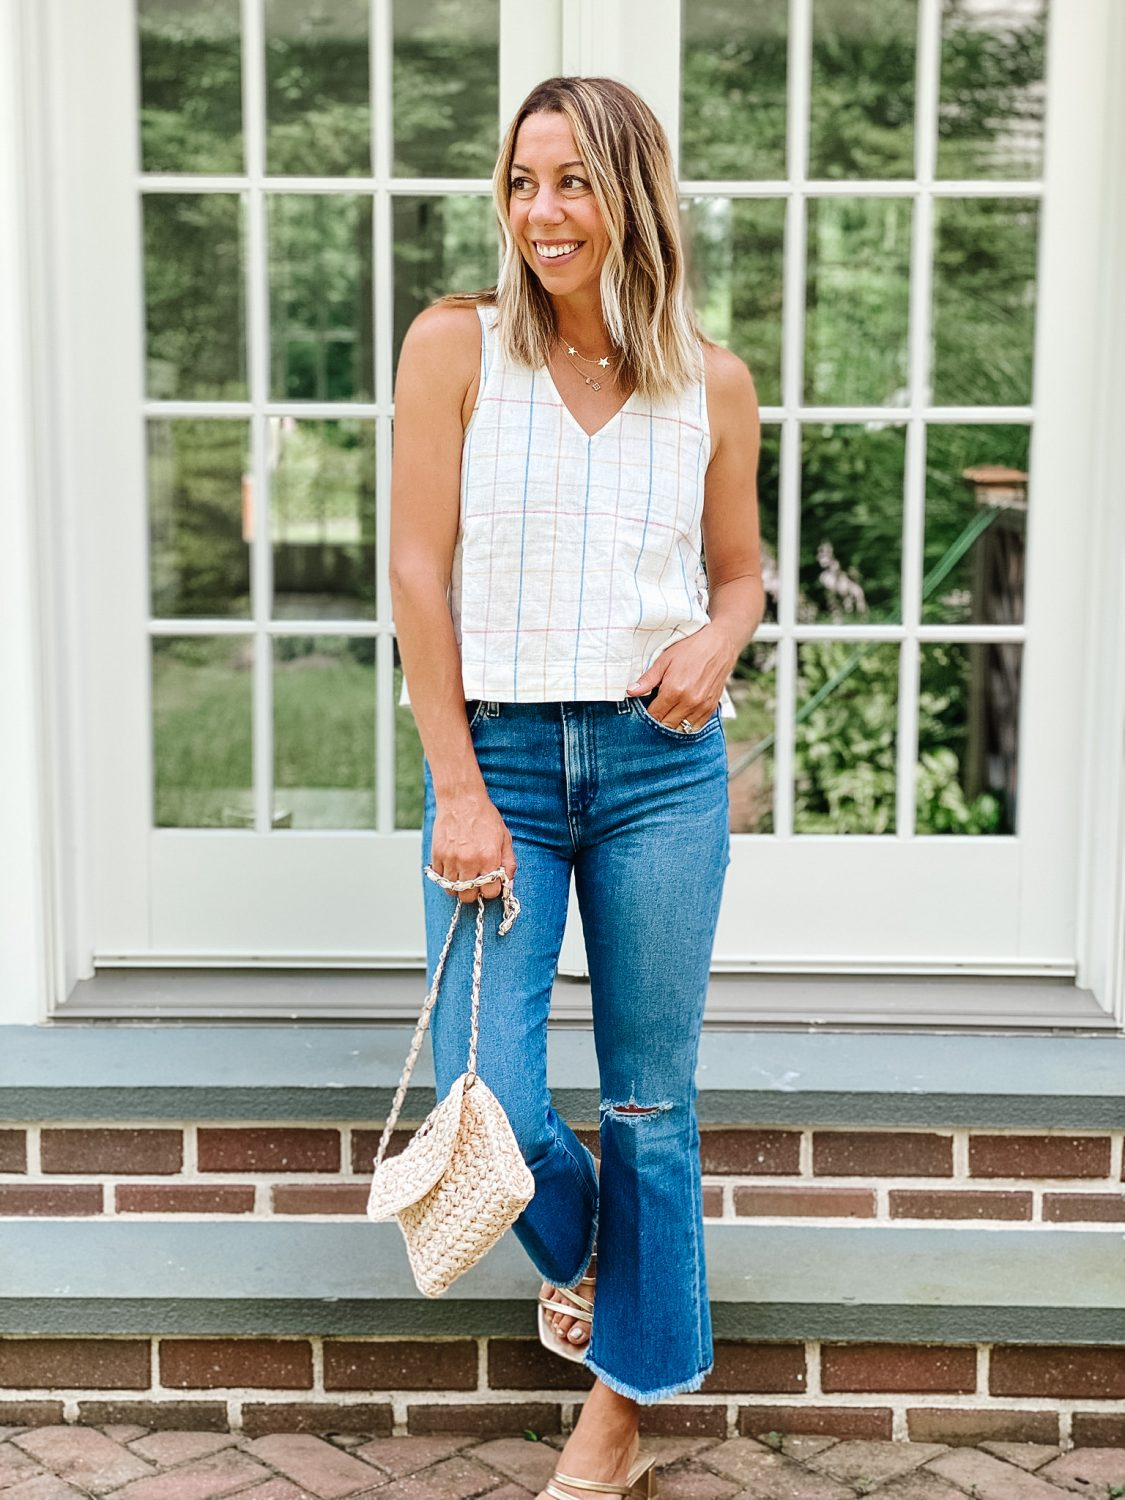 The Motherchic summer tops from Nordstrom